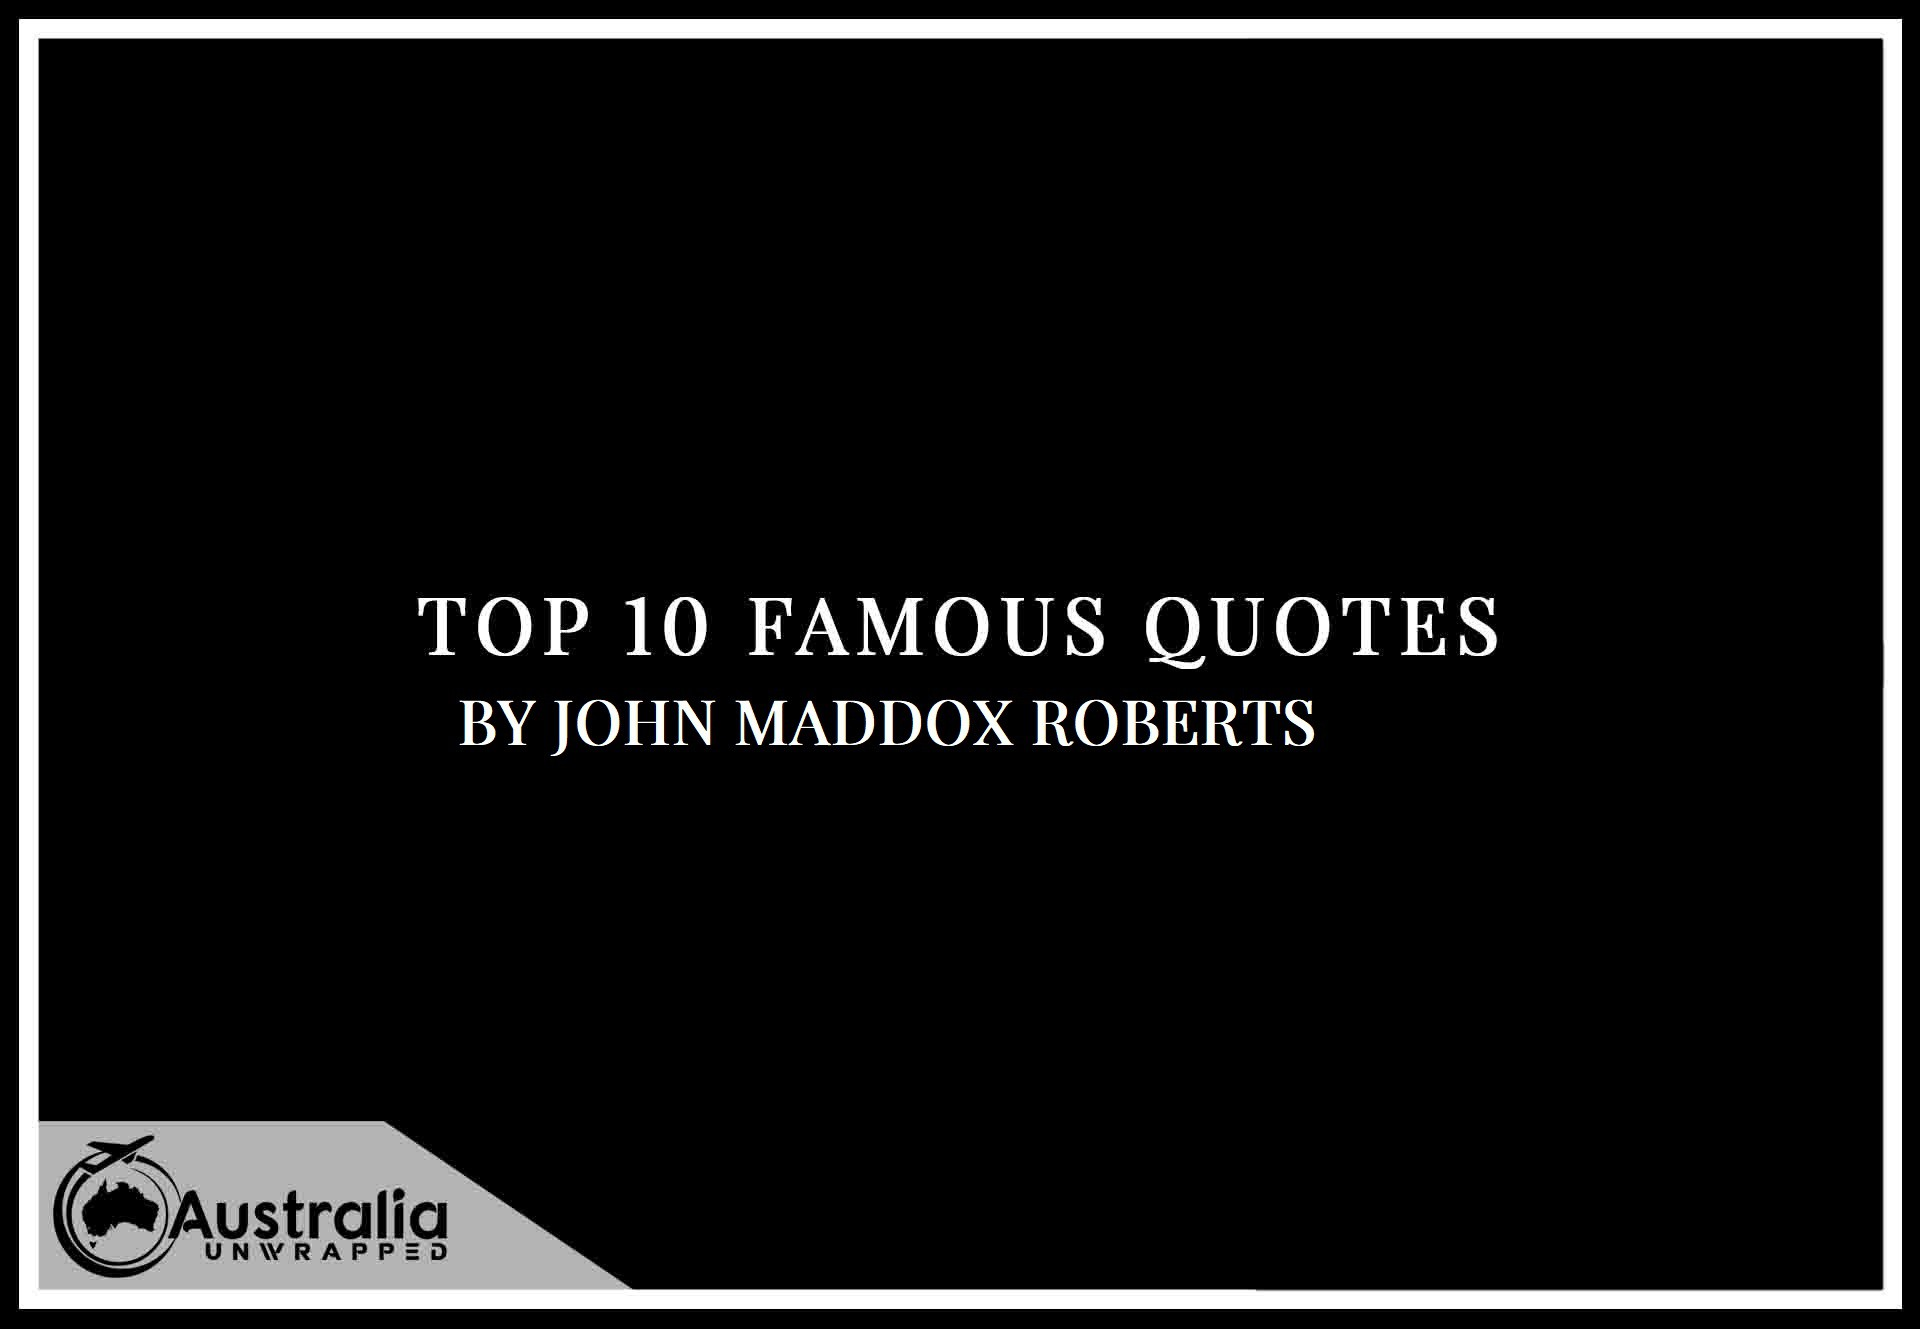 Top 10 Famous Quotes by Author John Maddox Roberts